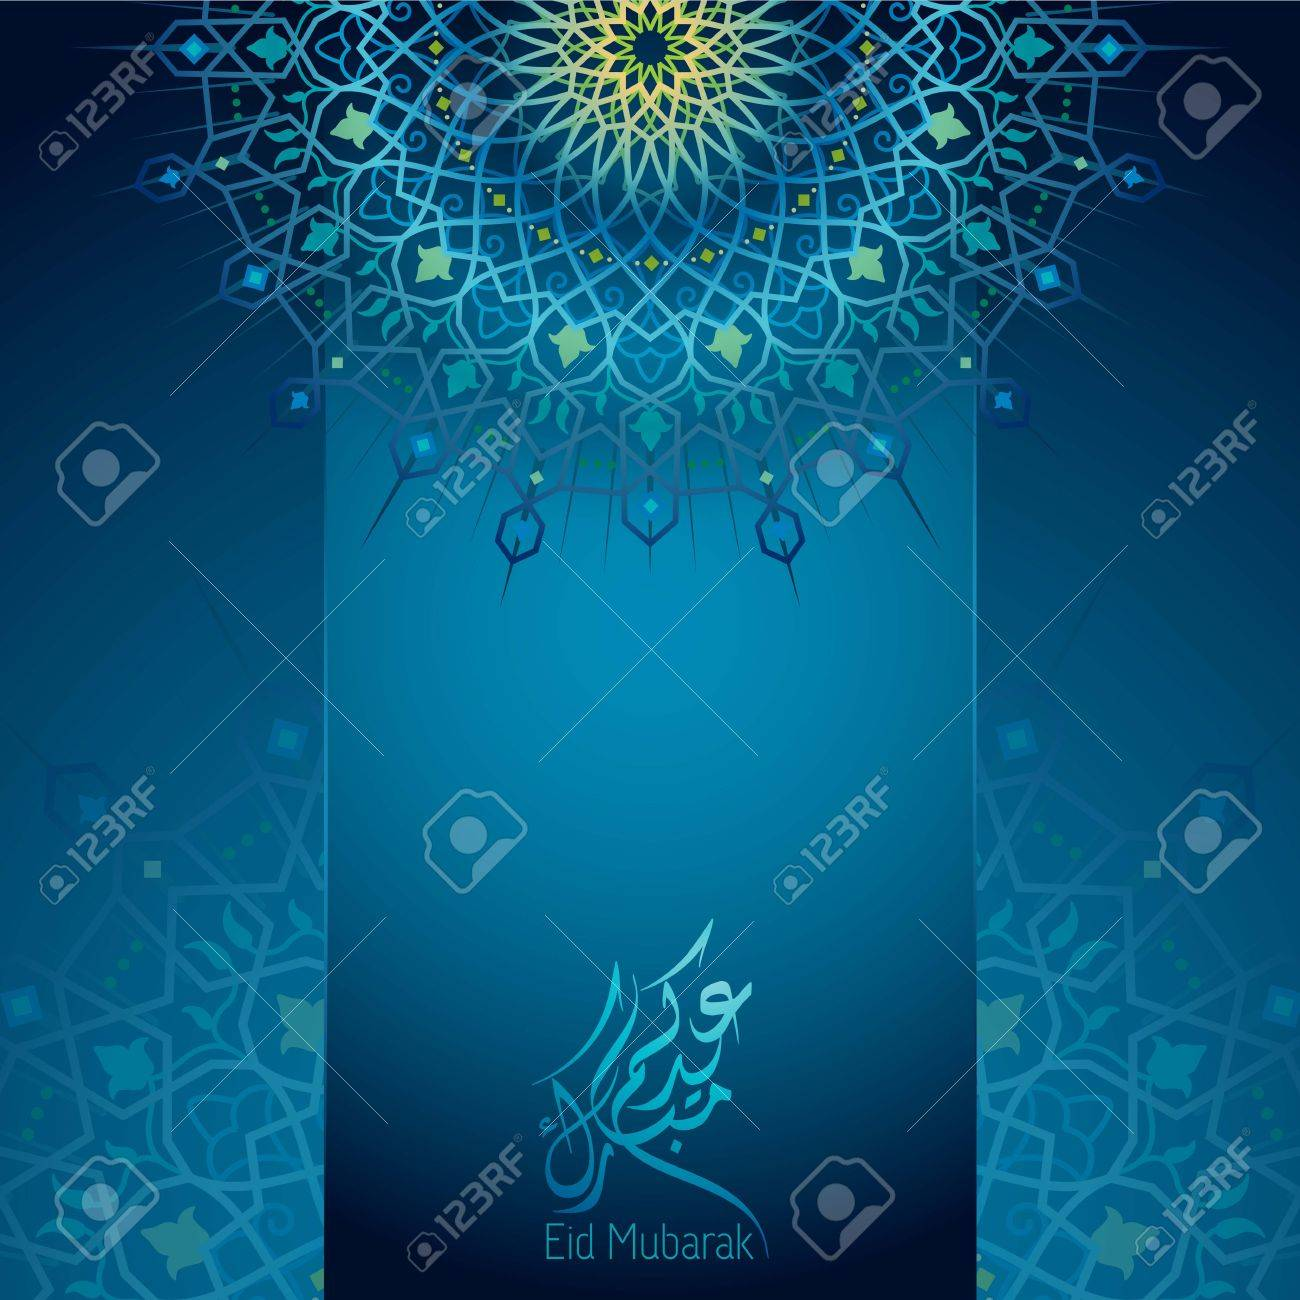 Download 660+ Background Islamic Vector Free HD Terbaik